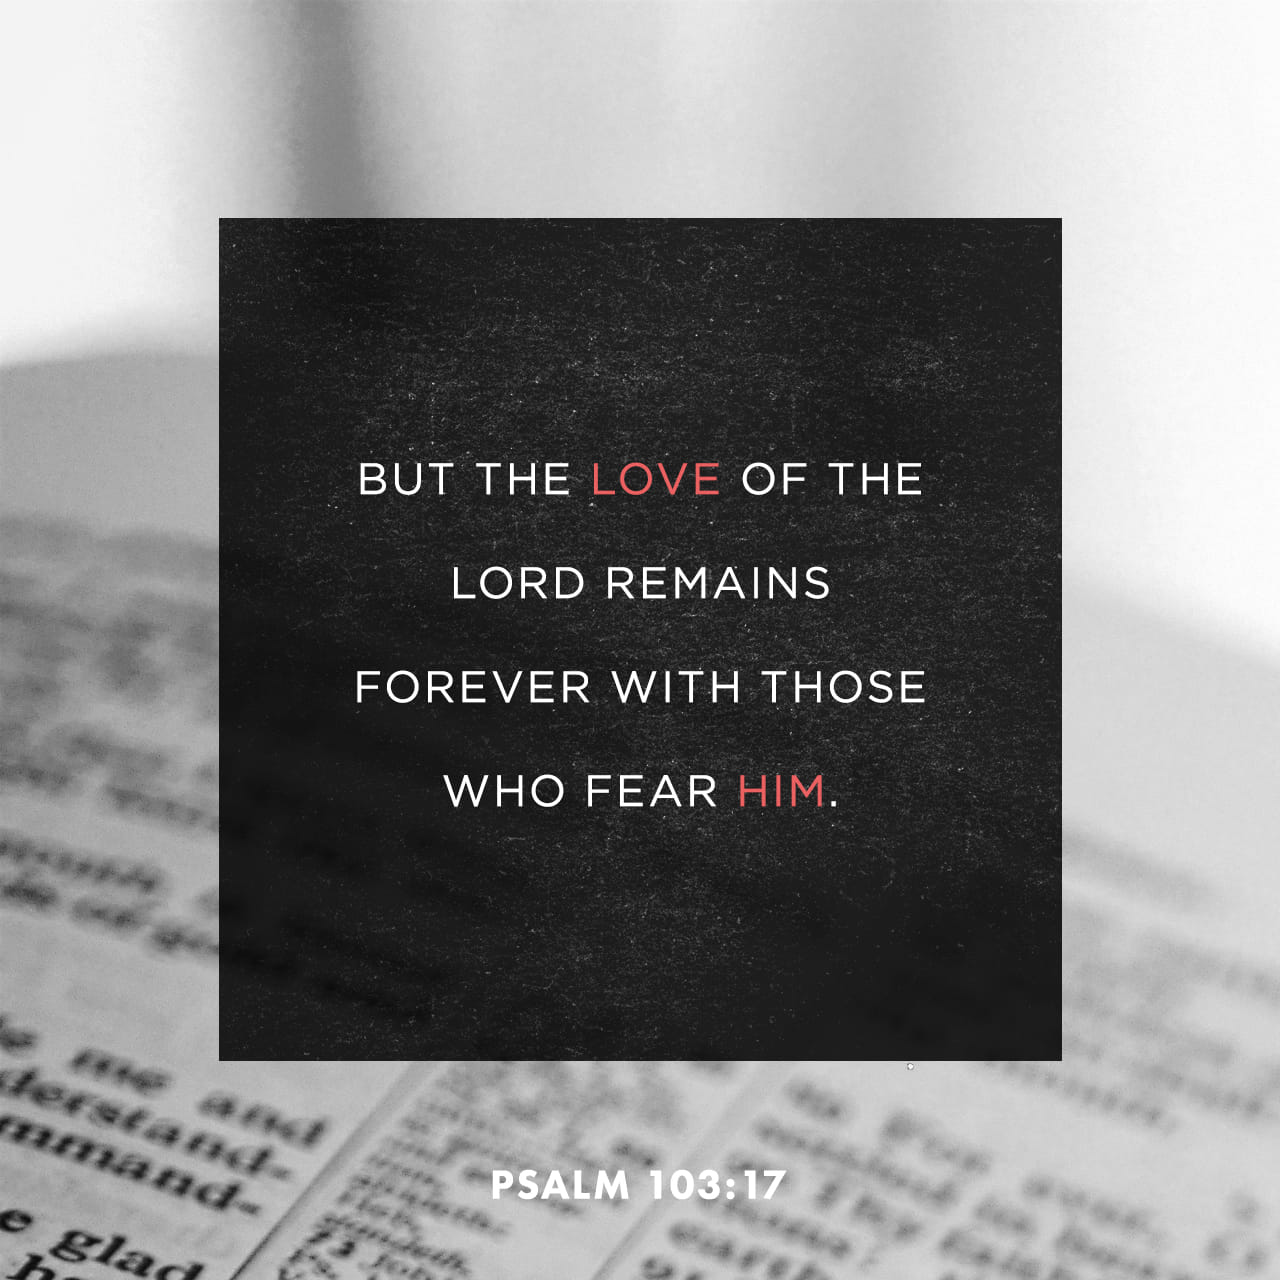 Psalms 103:17-18 But the mercy of the LORD is from everlasting to everlasting upon them that fear him, and his righteousness unto children's children; To such as keep his covenant, and to those that remember his comma | King James Version (KJV)